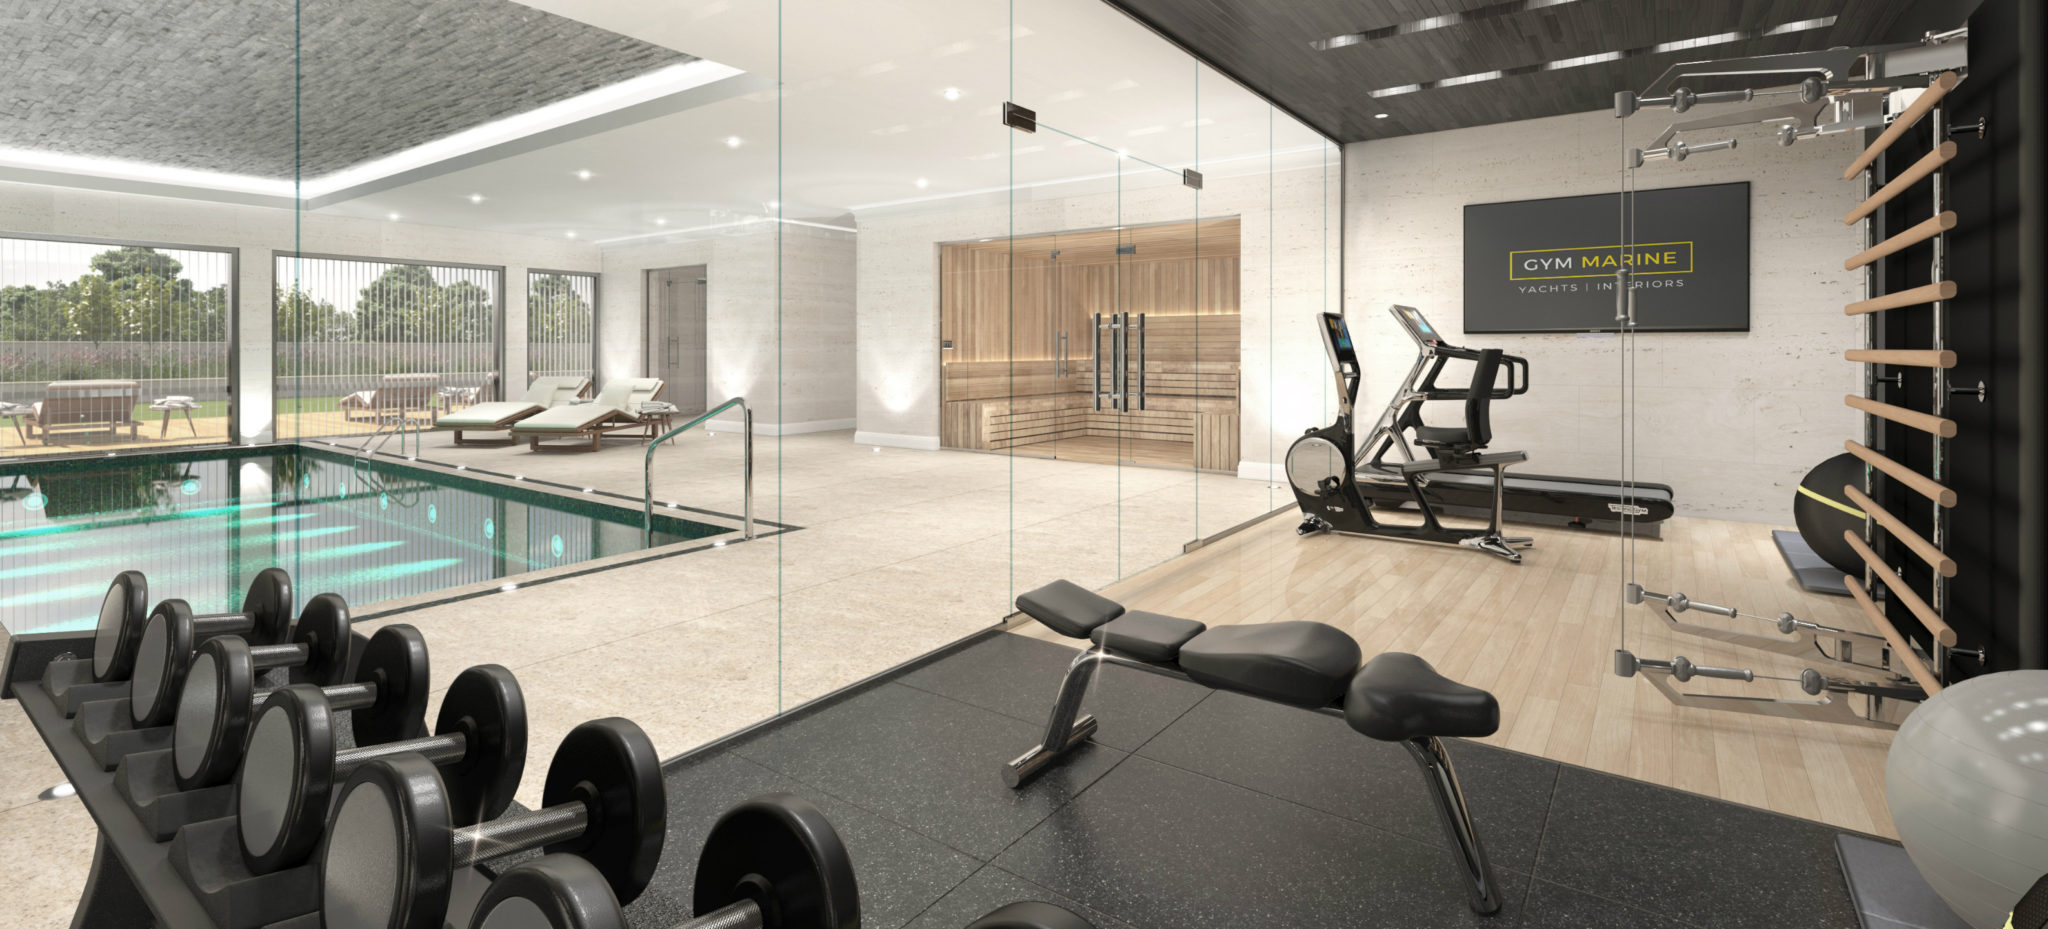 superyacht gym home gym design buy gym equipment gym marine. Black Bedroom Furniture Sets. Home Design Ideas